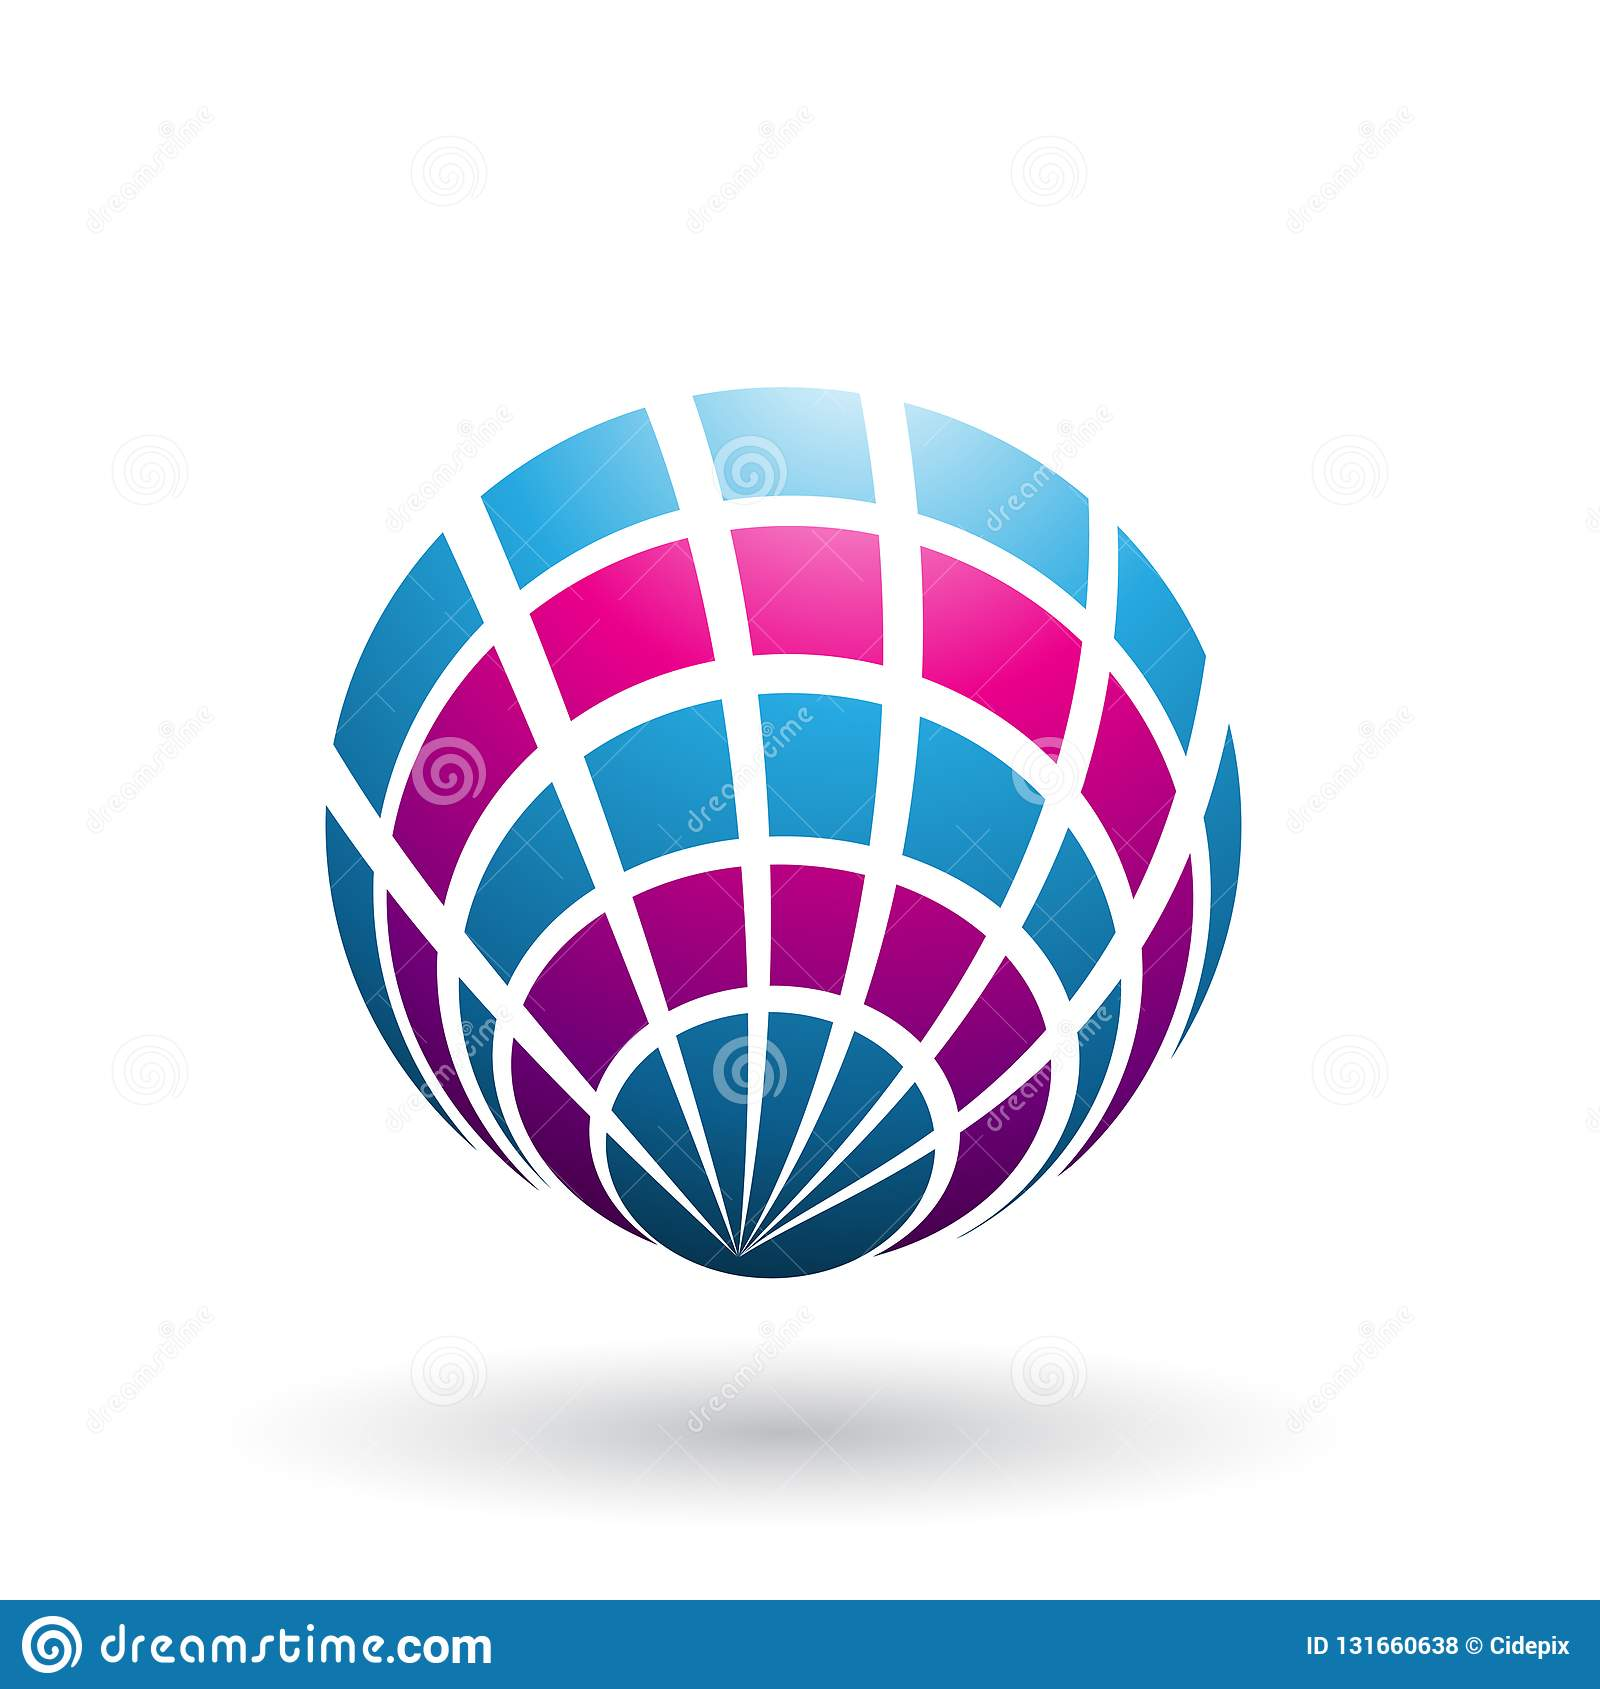 Magenta and Blue Shell Like Round Icon isolated on a White Background